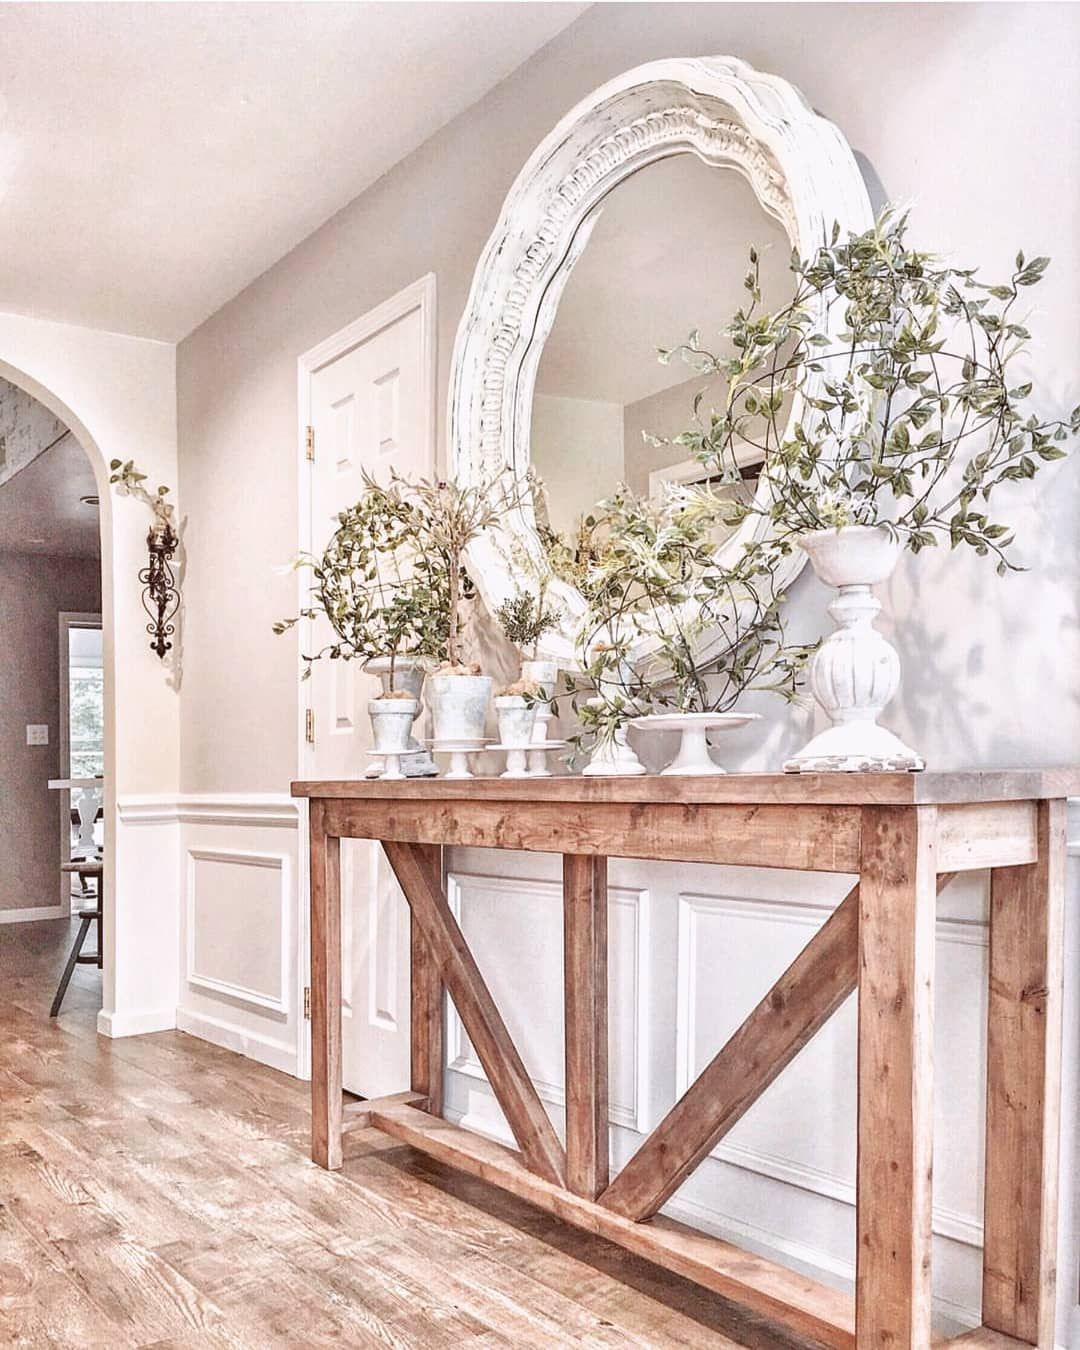 20 Small Dining Room Ideas On A Budget: Home Sweet Home! 🥰 ⠀⠀⠀⠀⠀⠀⠀⠀⠀⠀⠀⠀ ⠀⠀⠀⠀⠀⠀⠀⠀⠀⠀⠀⠀ I Have So